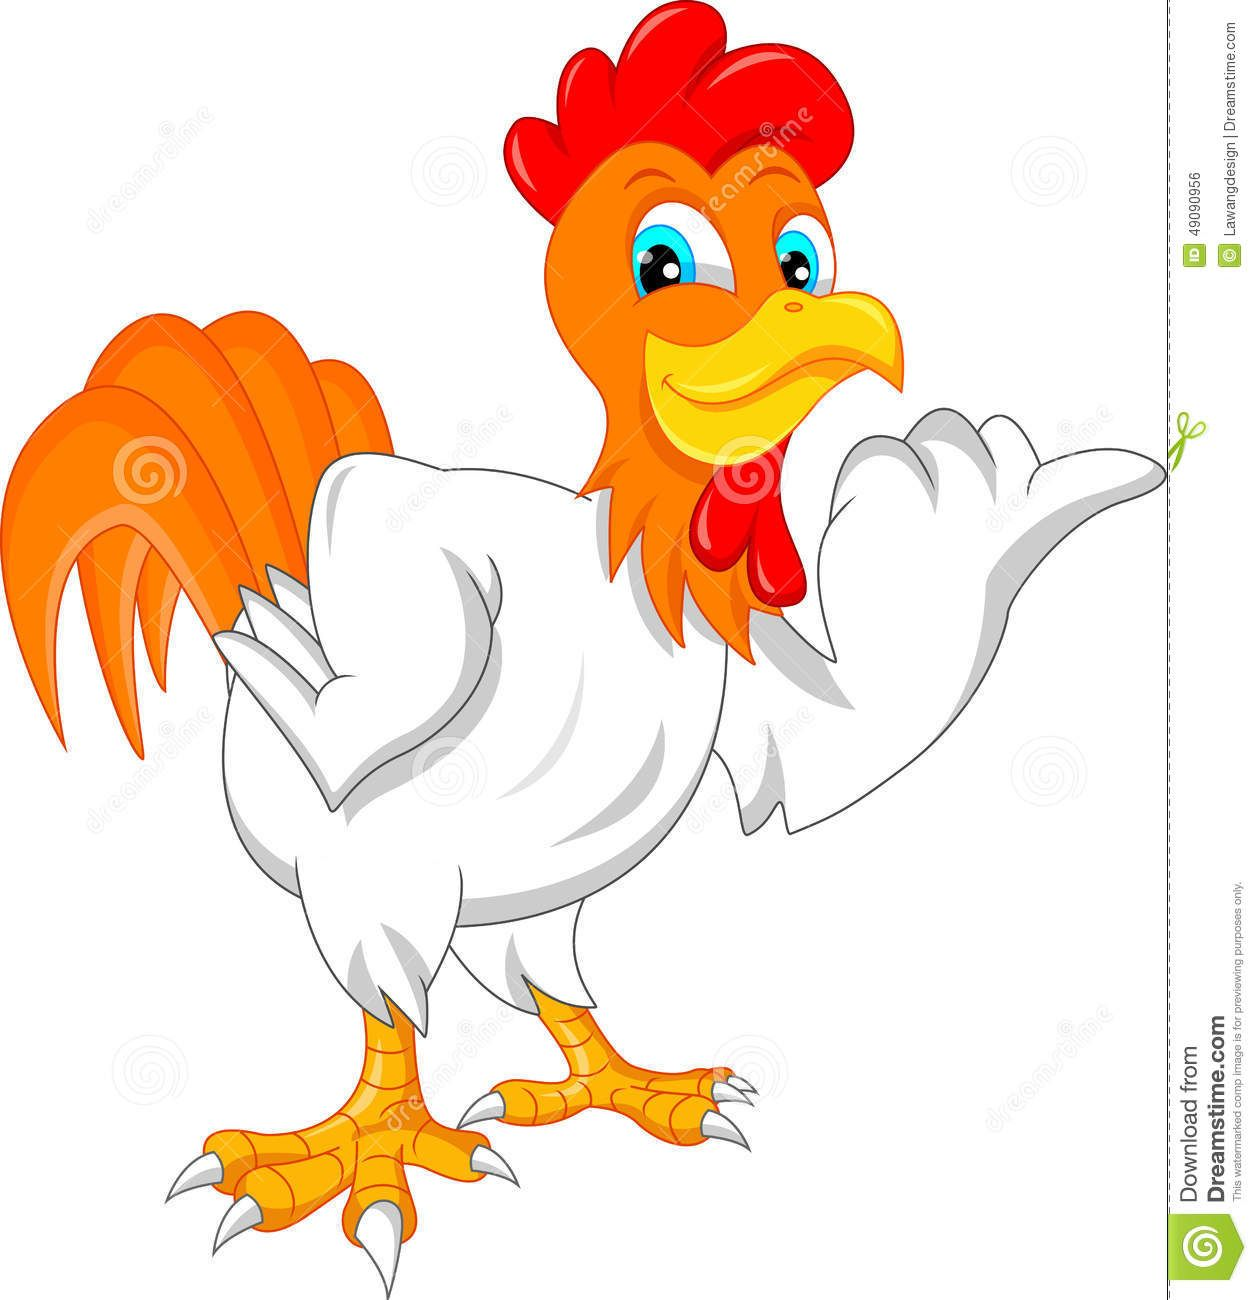 Cute Rooster Cartoon Stock Vector Image 49090956